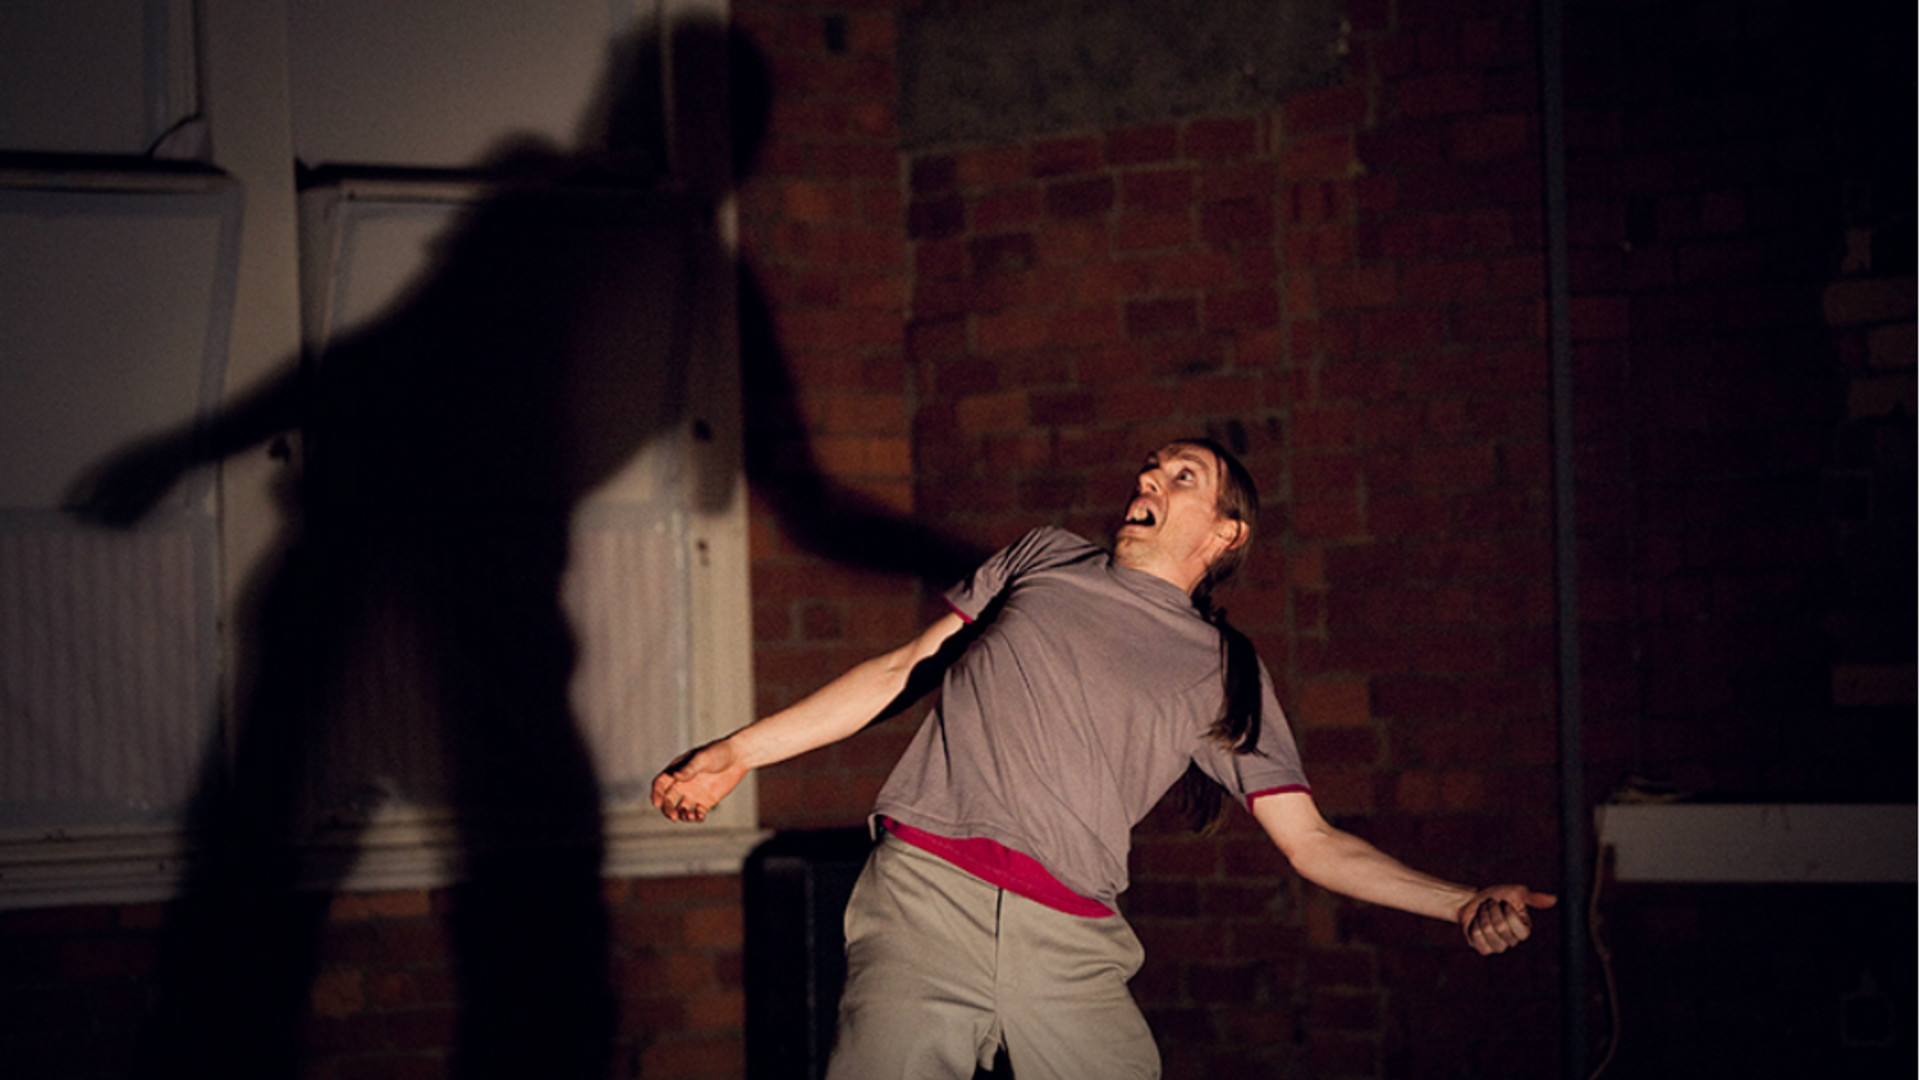 A male dancer with long hair and leans backward with a shocked expression, his shadow large on the brick wall and window behind him